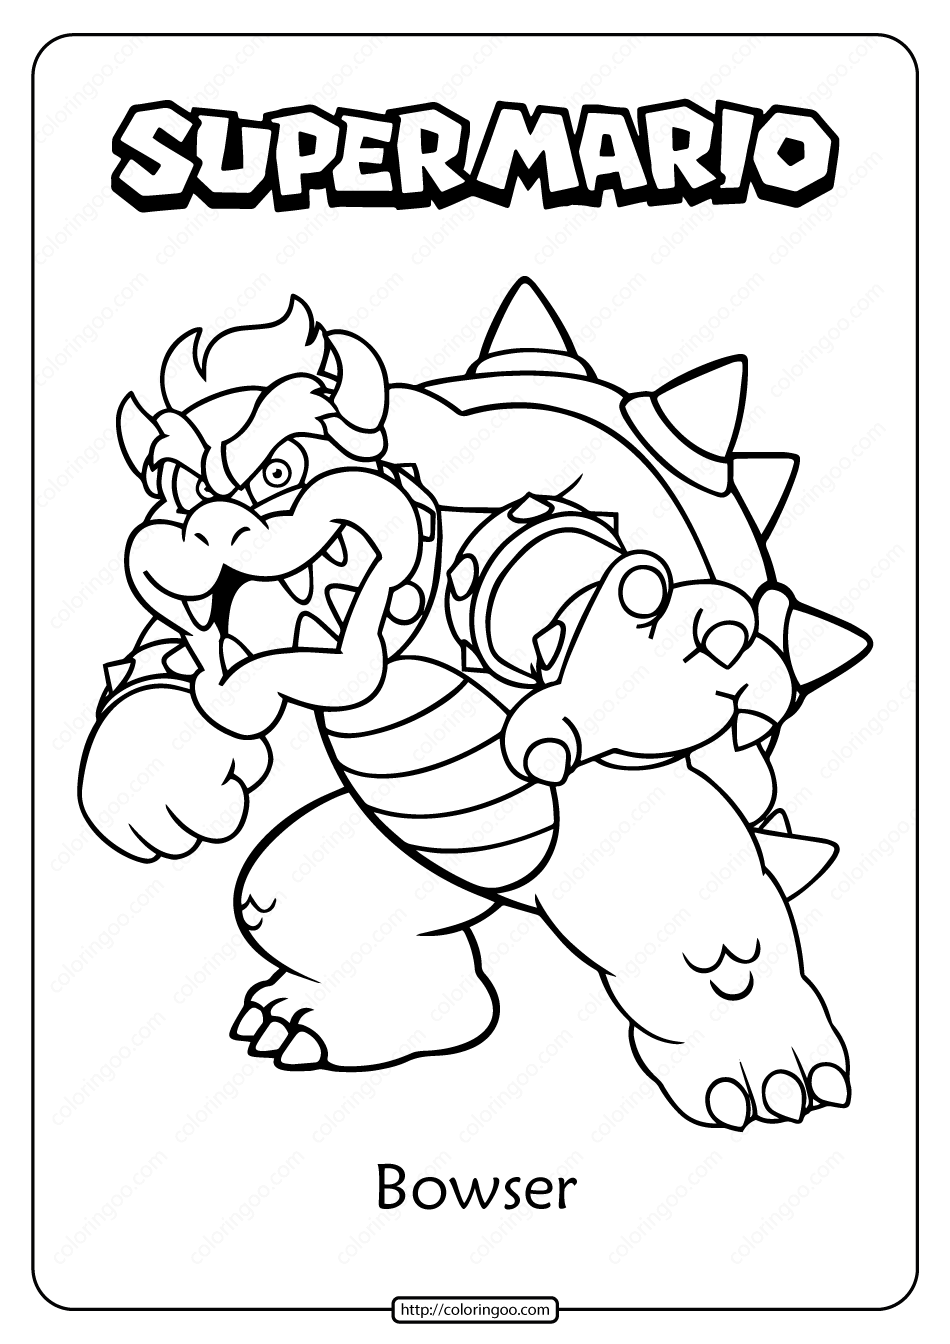 Free Printable Super Mario Bowser Pdf Coloring Page